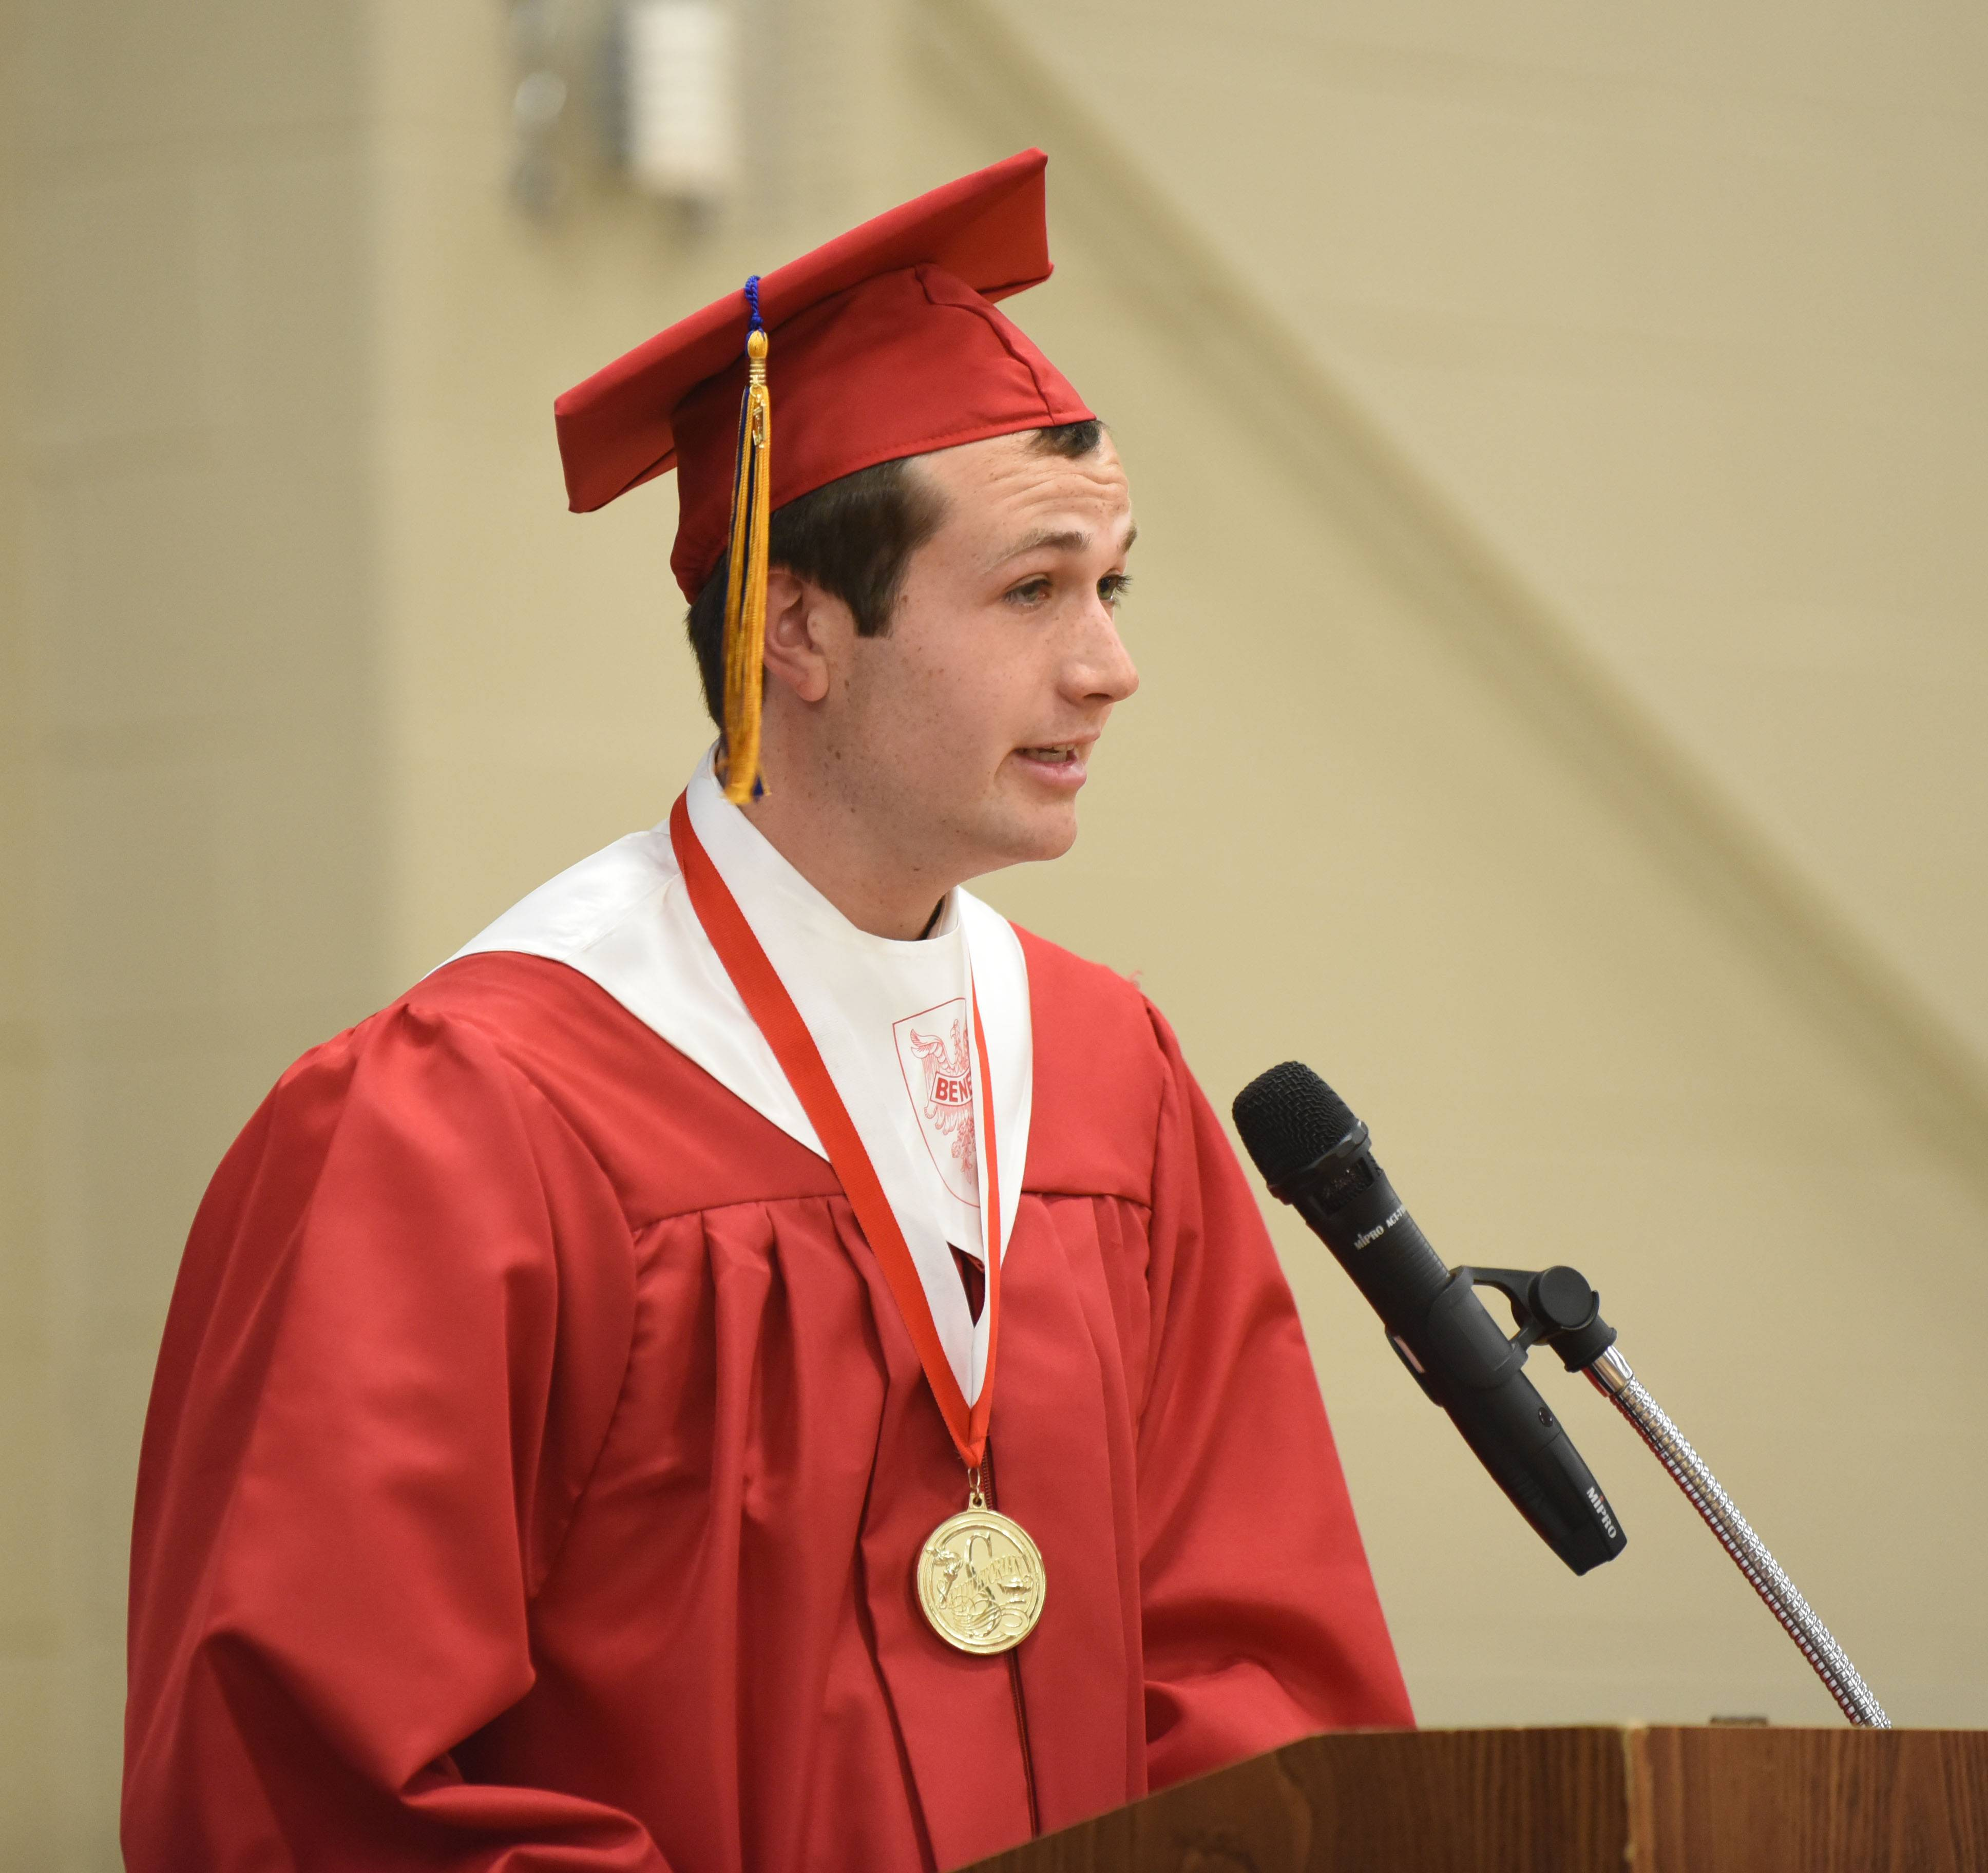 Salutatorian Declan McNamara gives his speech during the Benet Academy graduation ceremony Sunday.